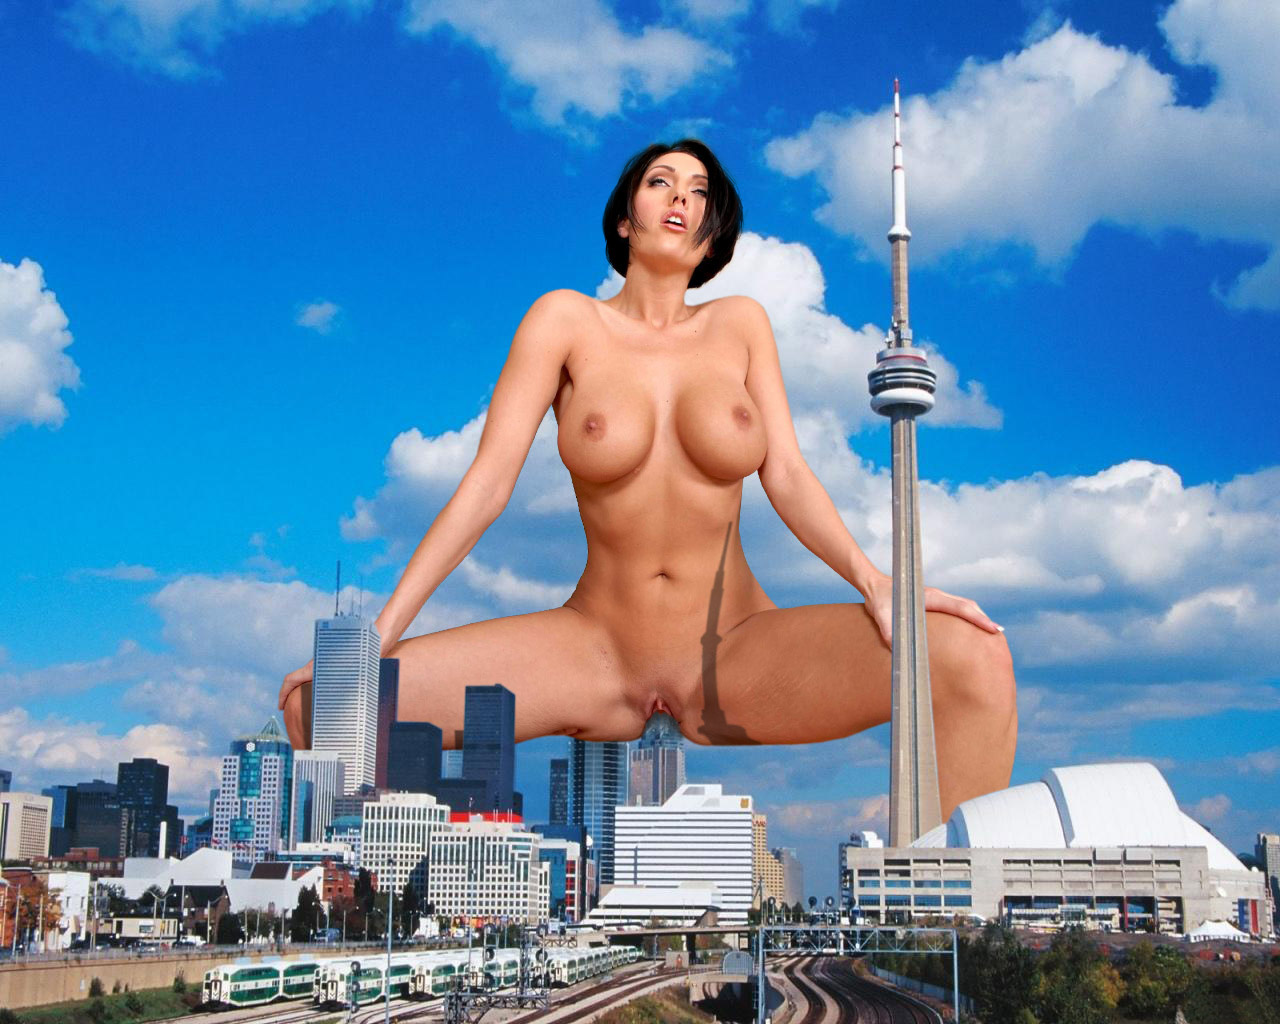 Giantess nude sex galleries